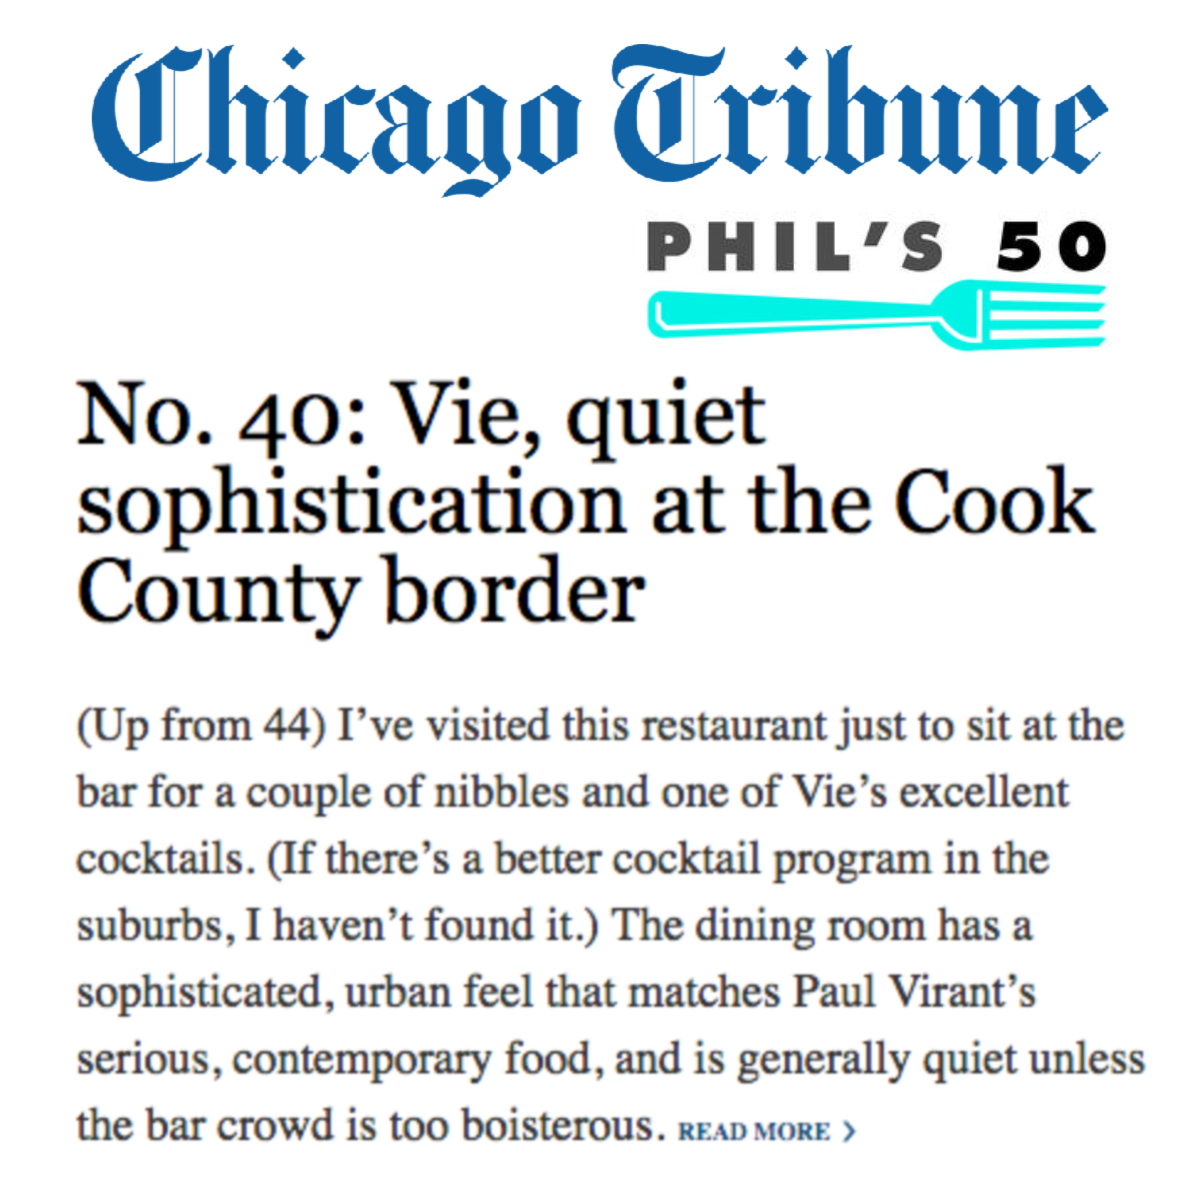 vie-phil-50-may-2019.png